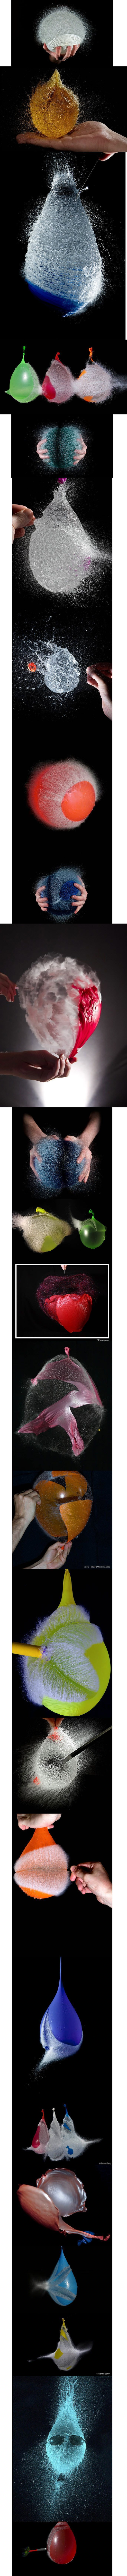 High Speed Collection of Balloons Bursting